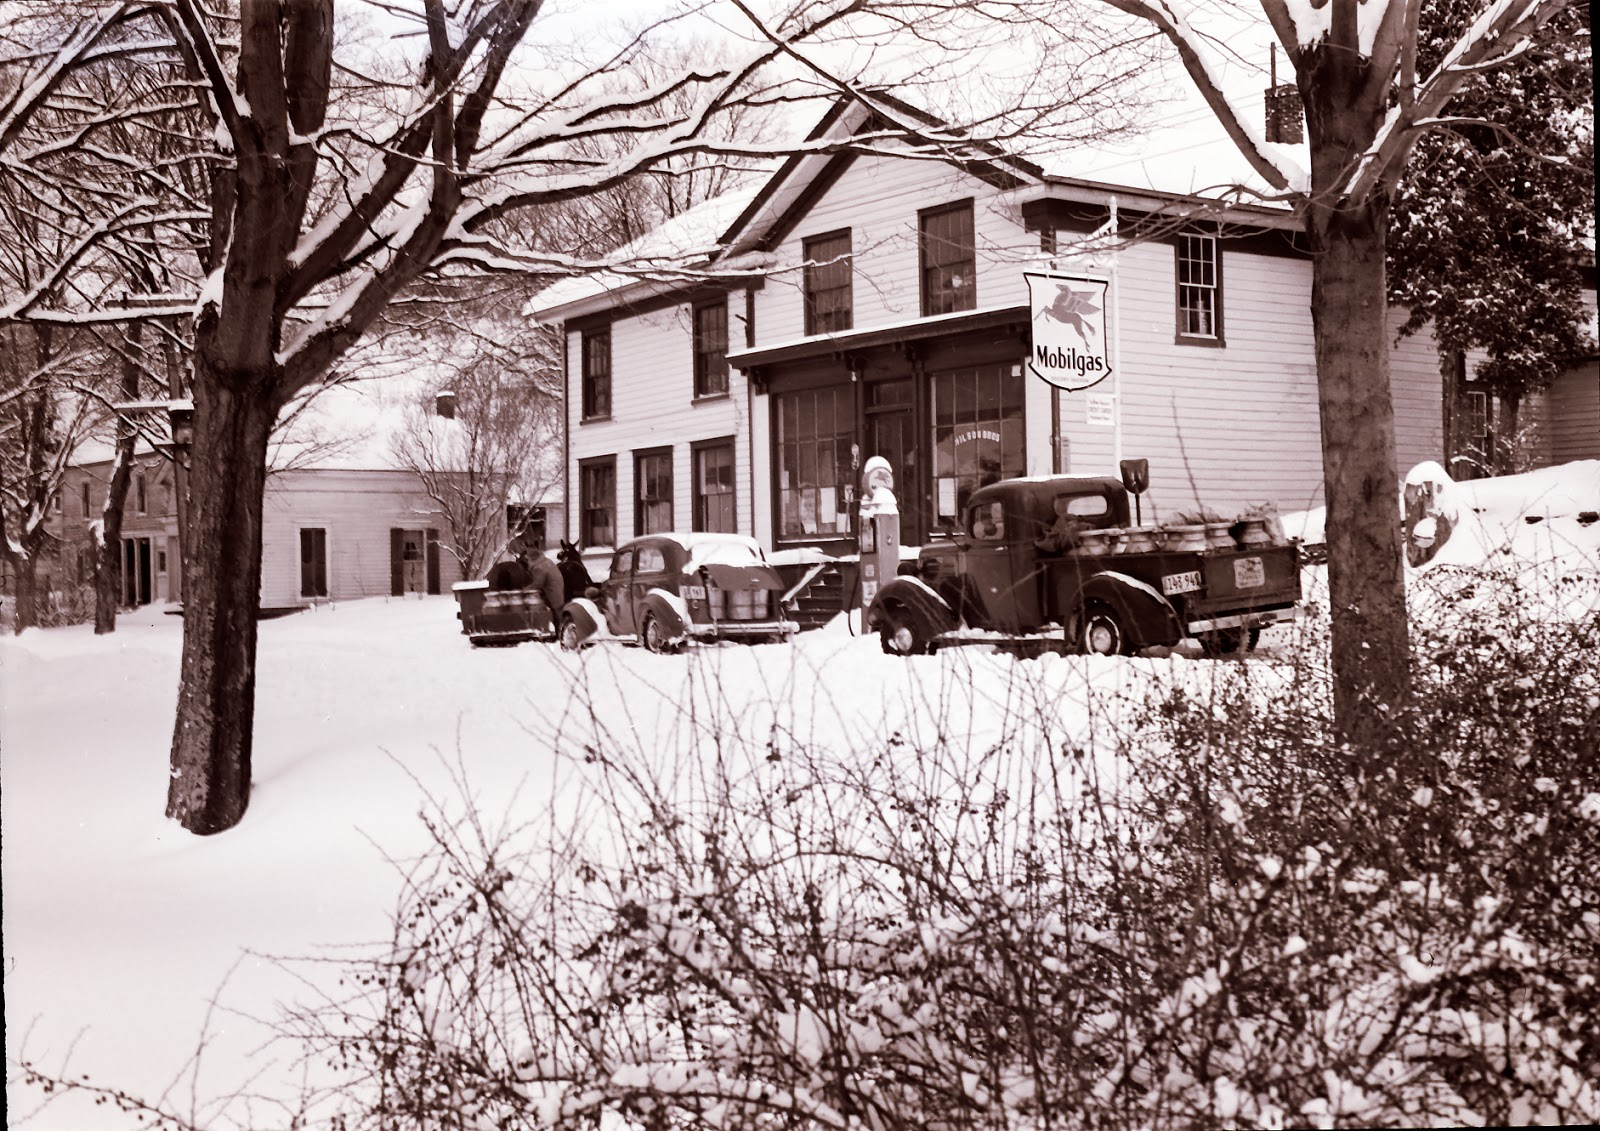 Hilson's Store, 1940s